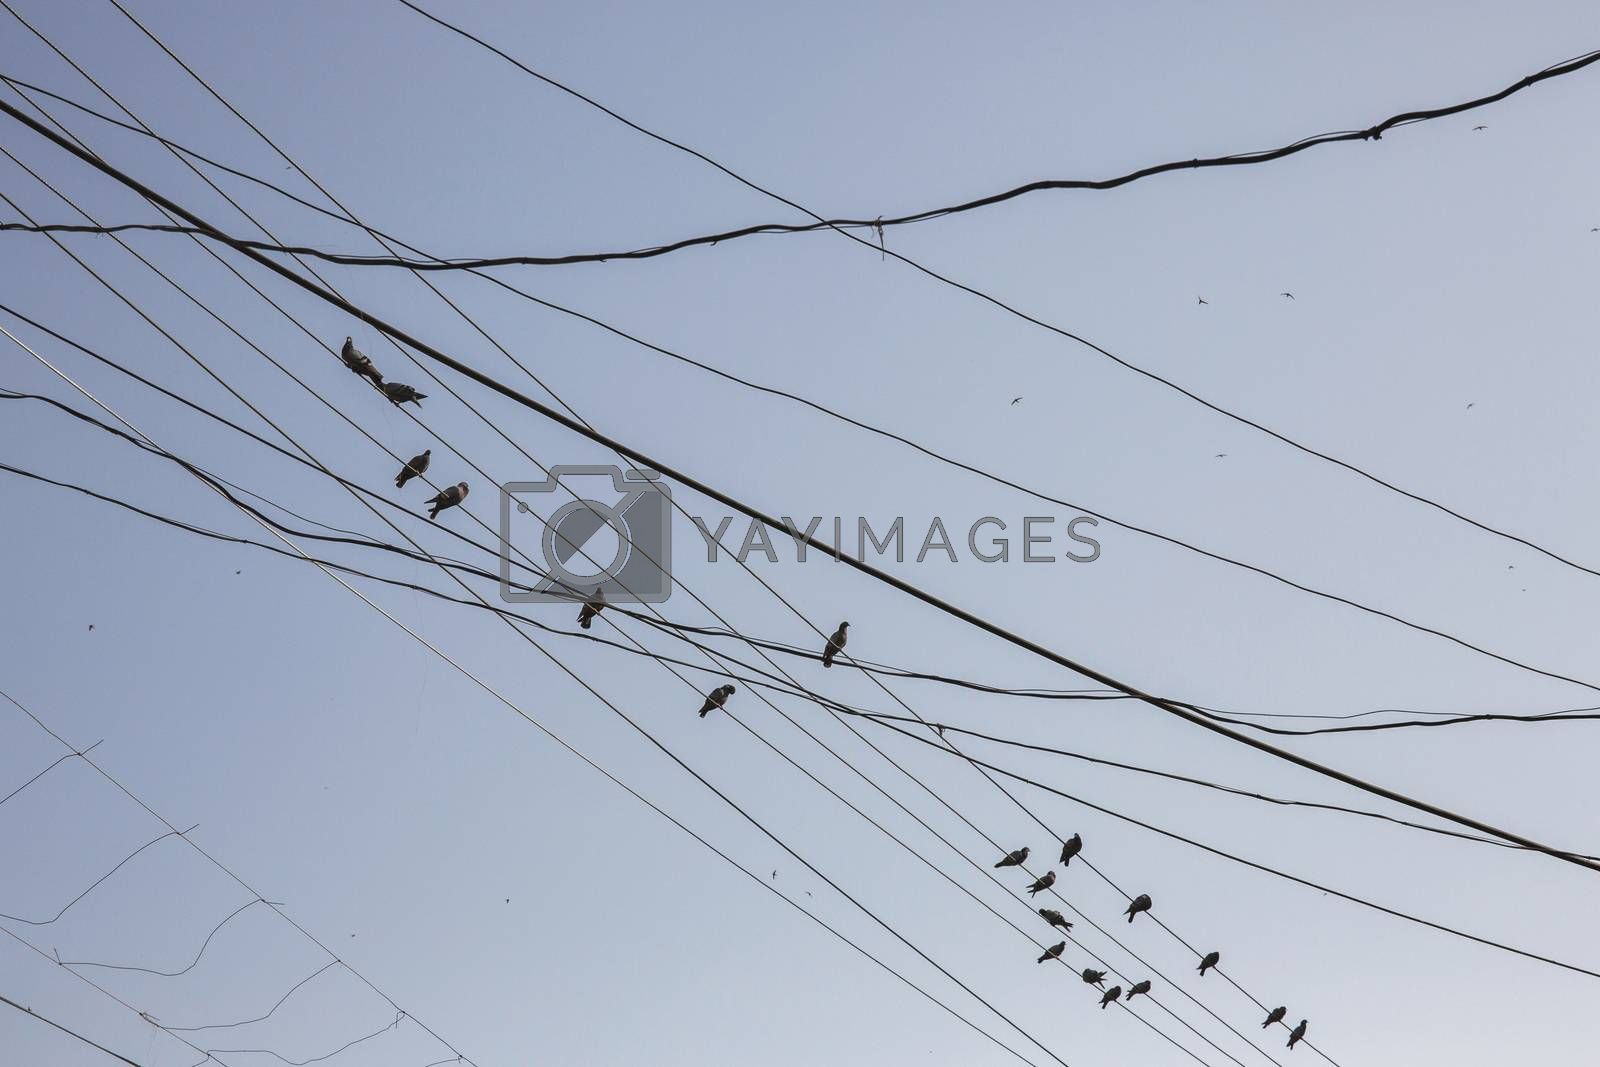 Birds on cables and wires on electric pole, Messy wires attached to electrics pole